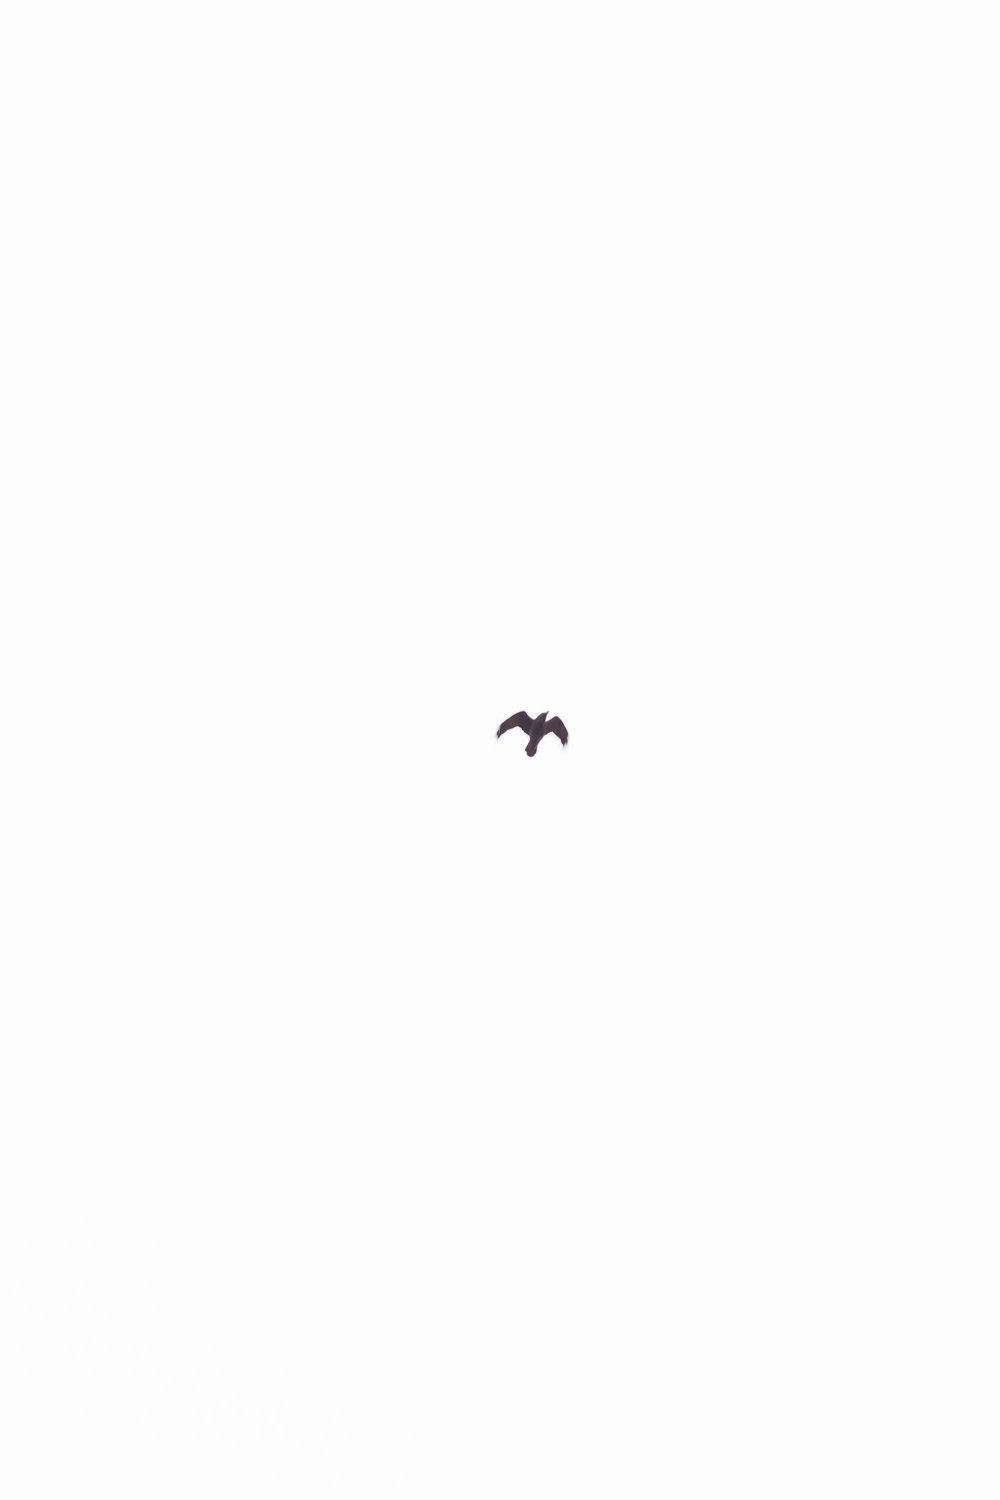 I'll never forget this guy. As I was taking pictures I saw him quickly coming towards me. He was so big I could hear his wings flapping as he flew over me.